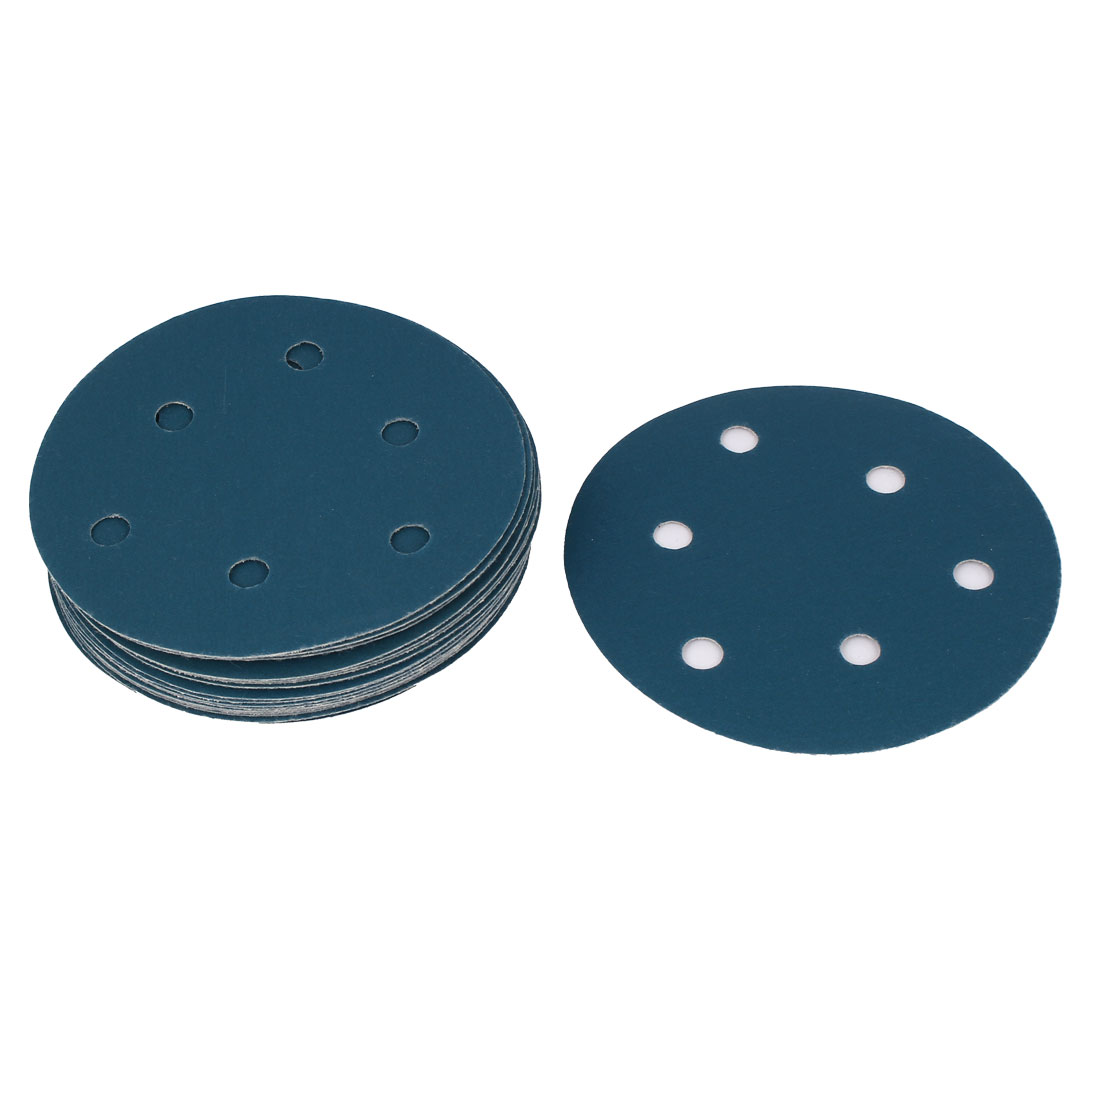 "5"" Sandpaper Auto Car Paint Polishing Sanding Disc Hook and Loop Fastener 6 Holes 600 Grit 20pcs"